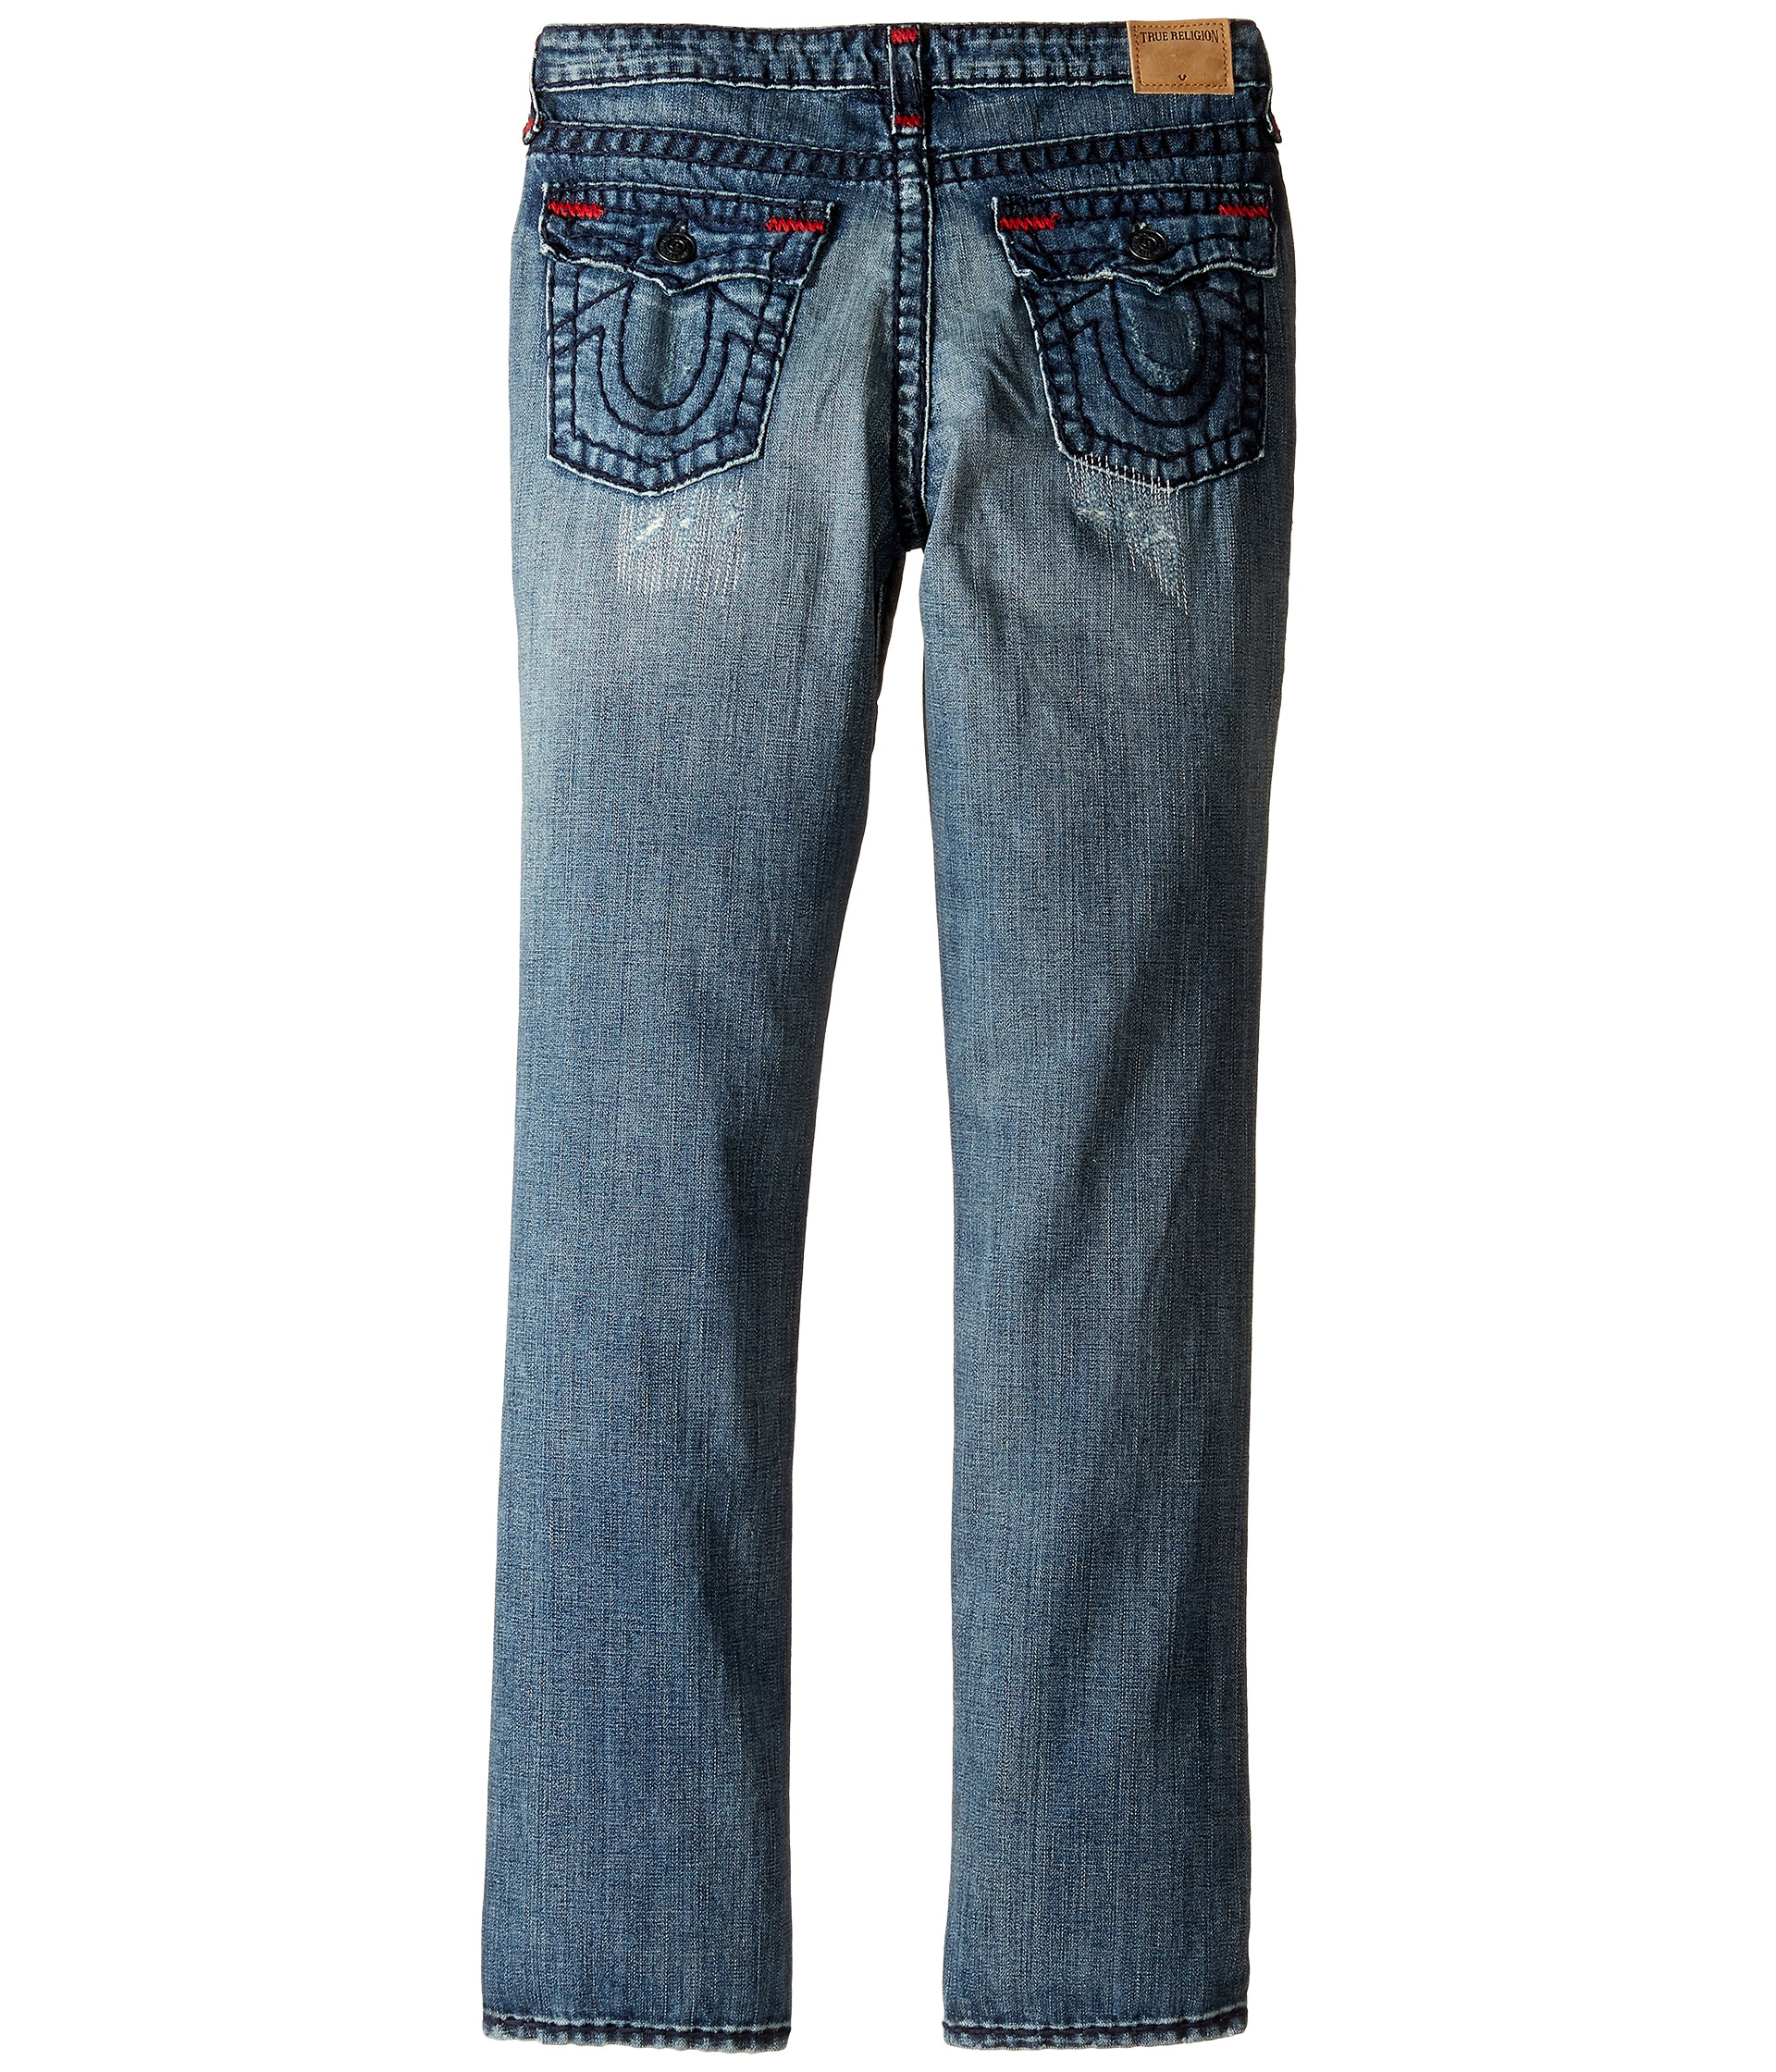 55c04d694 True Religion Kids Geno Super T Jeans in Tarnished Wash (Big Kids ...